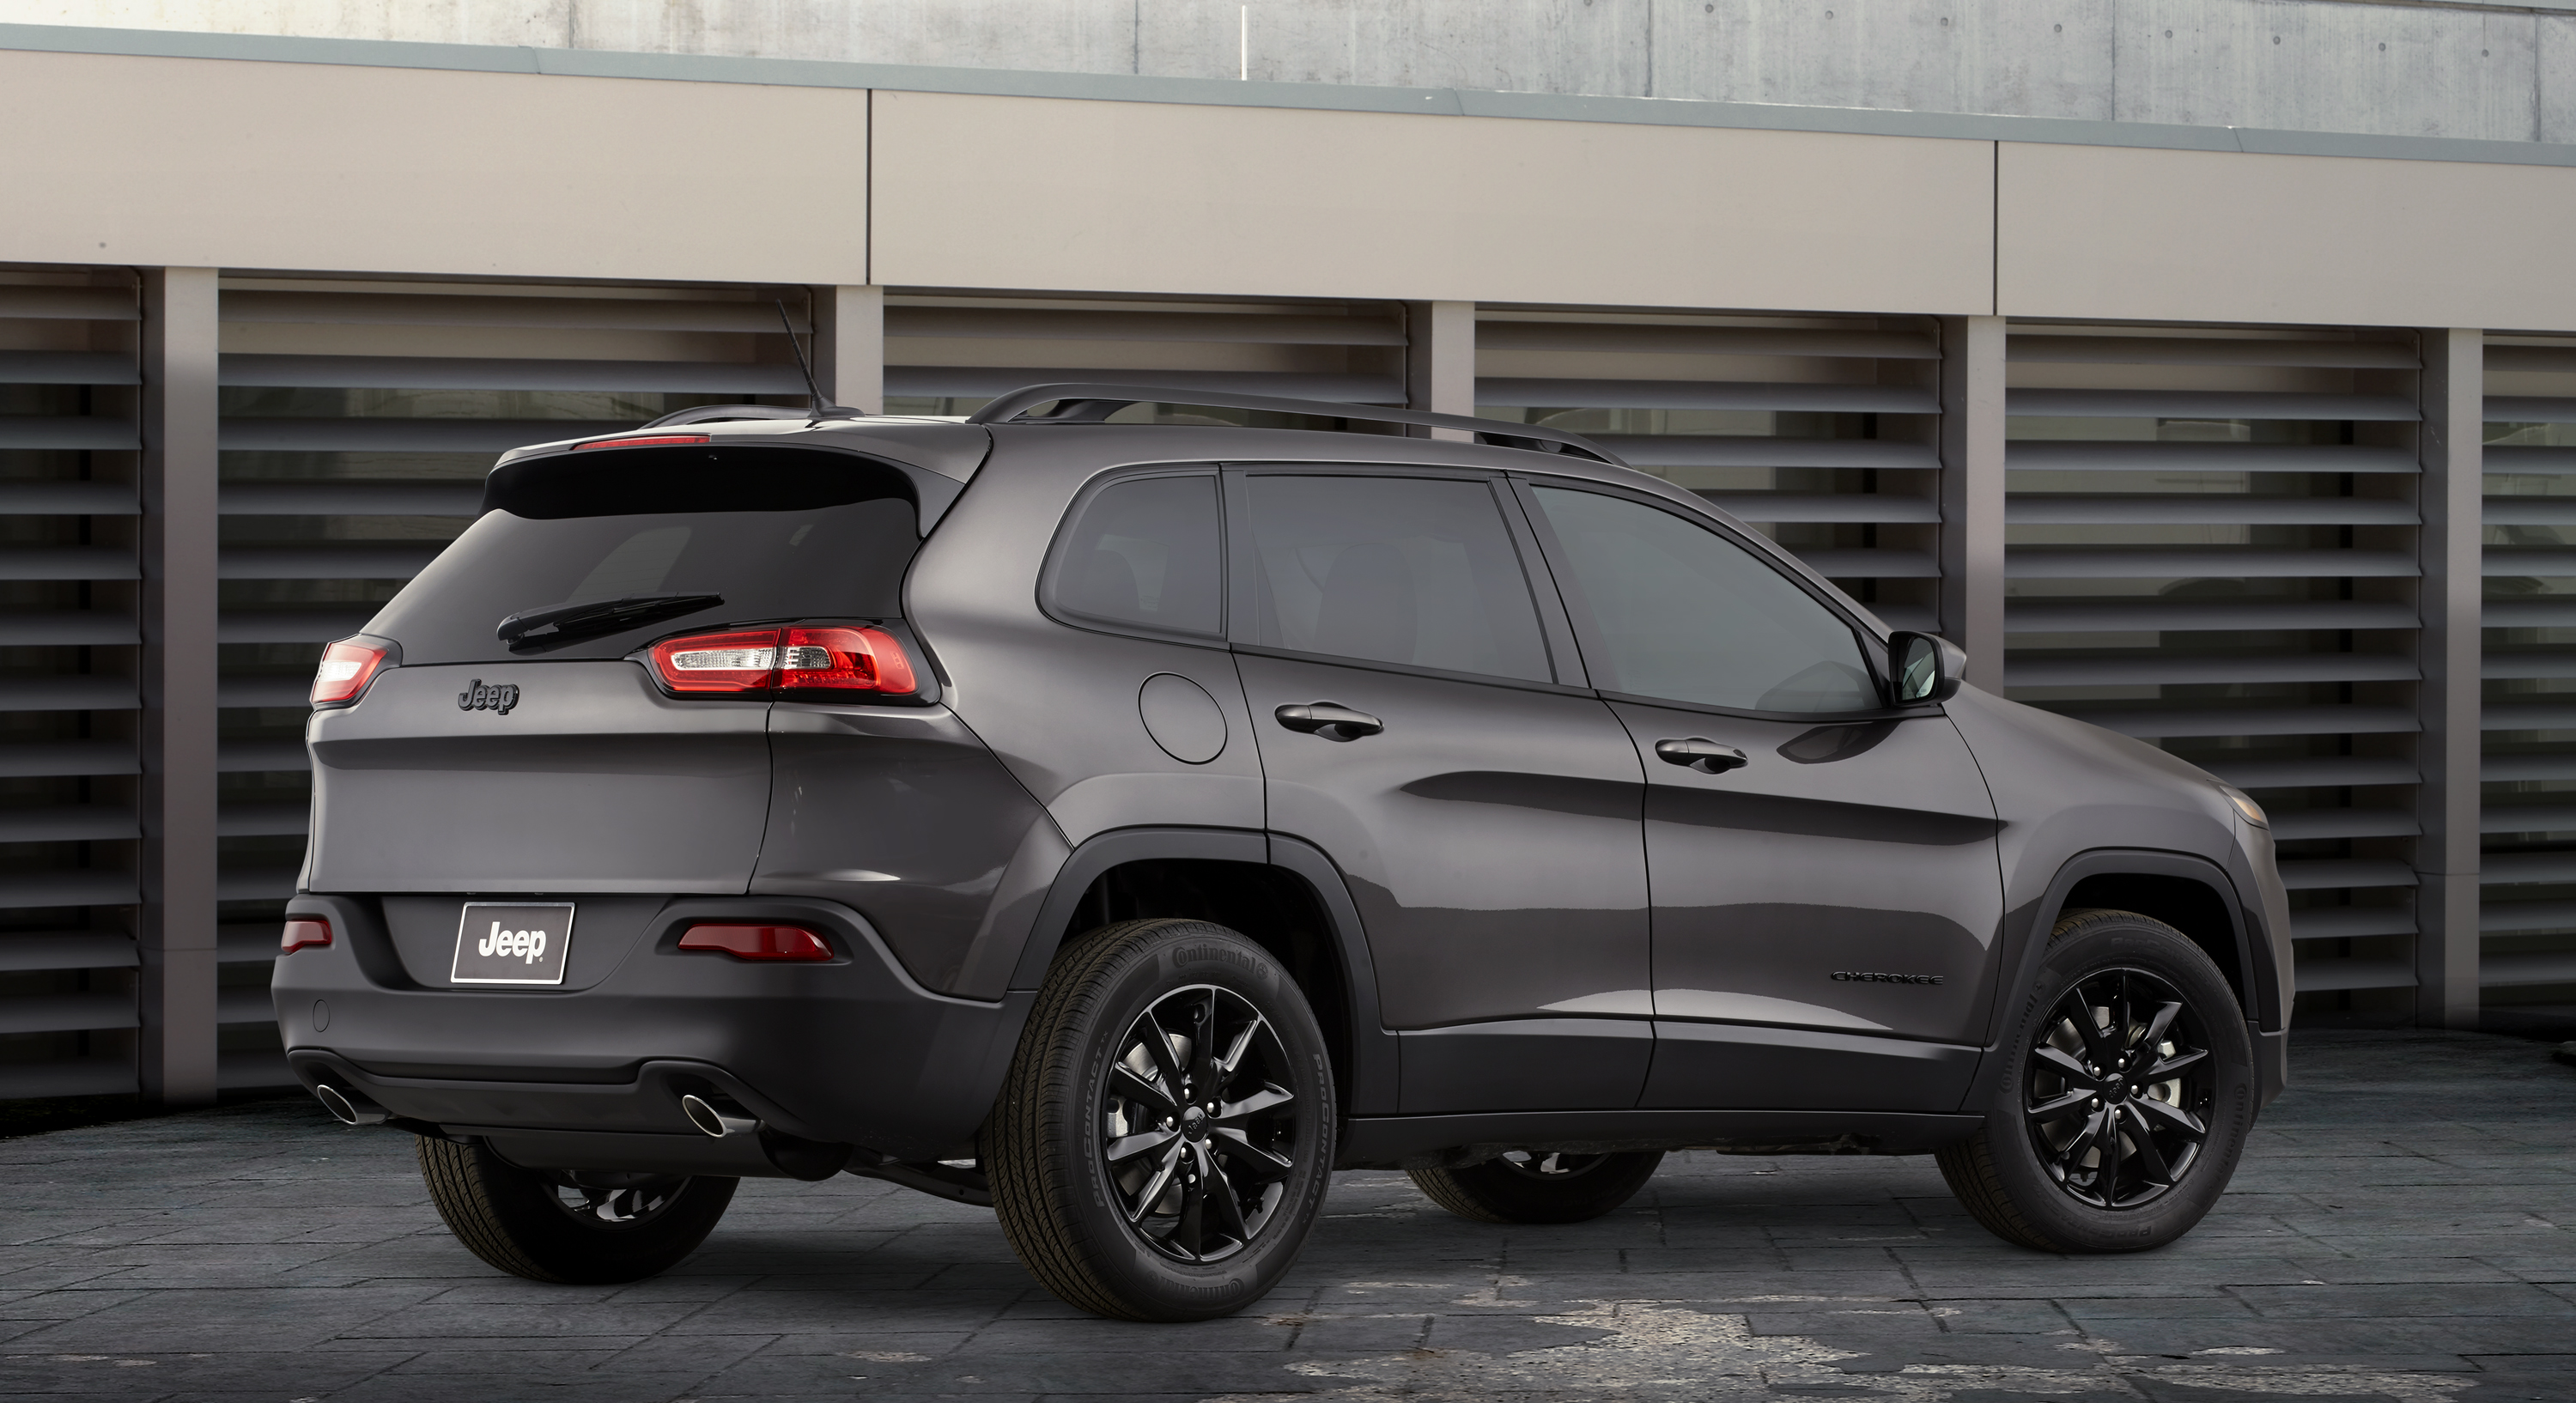 2014 jeep cherokee altitude information jeep cherokee forum. Cars Review. Best American Auto & Cars Review